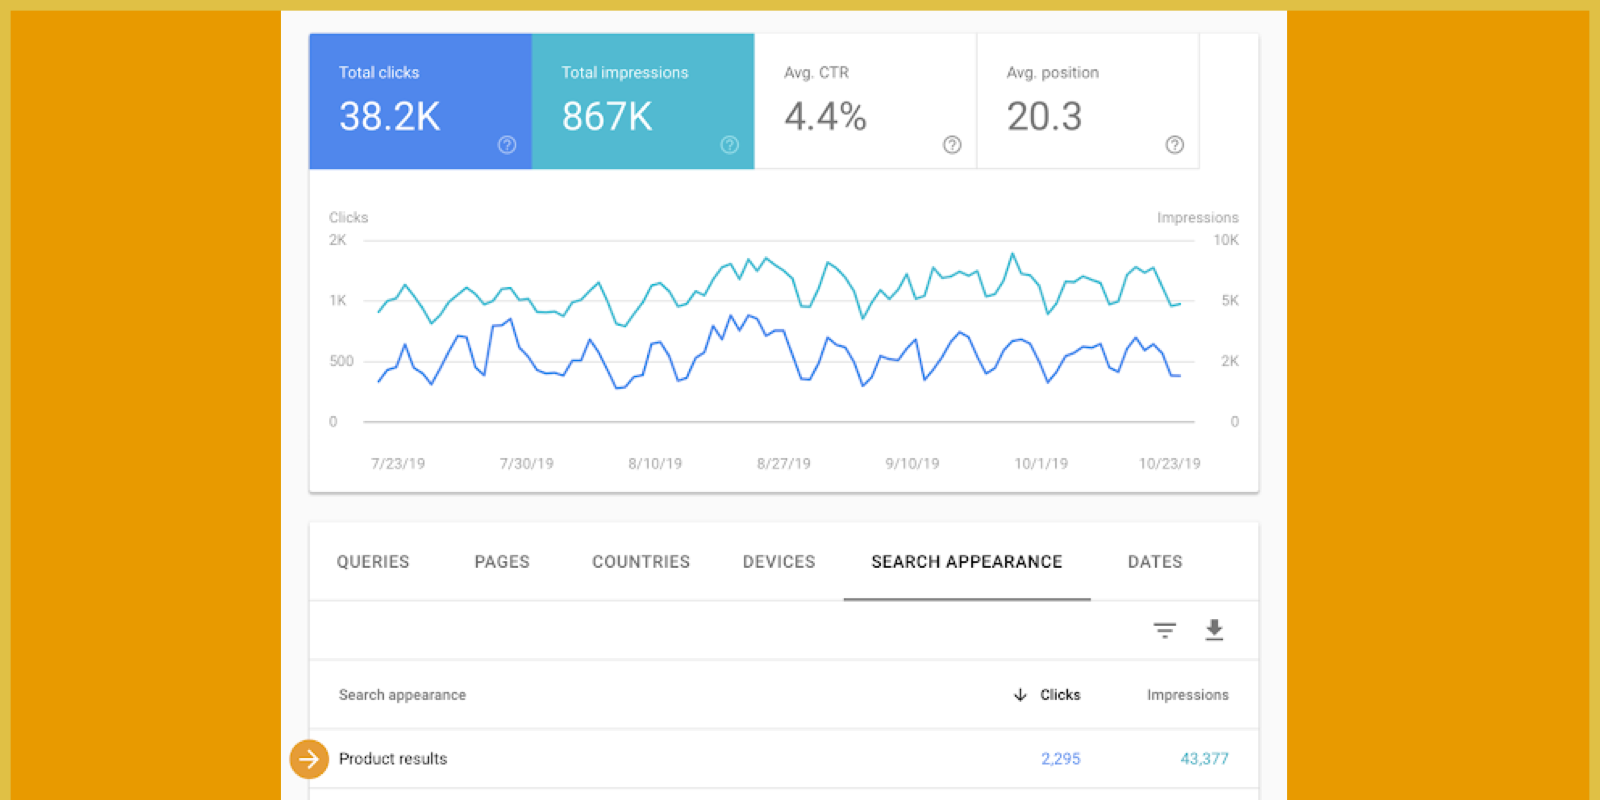 Google launches New reporting tool for Products Results in Search Console seo latest news Nov 2019